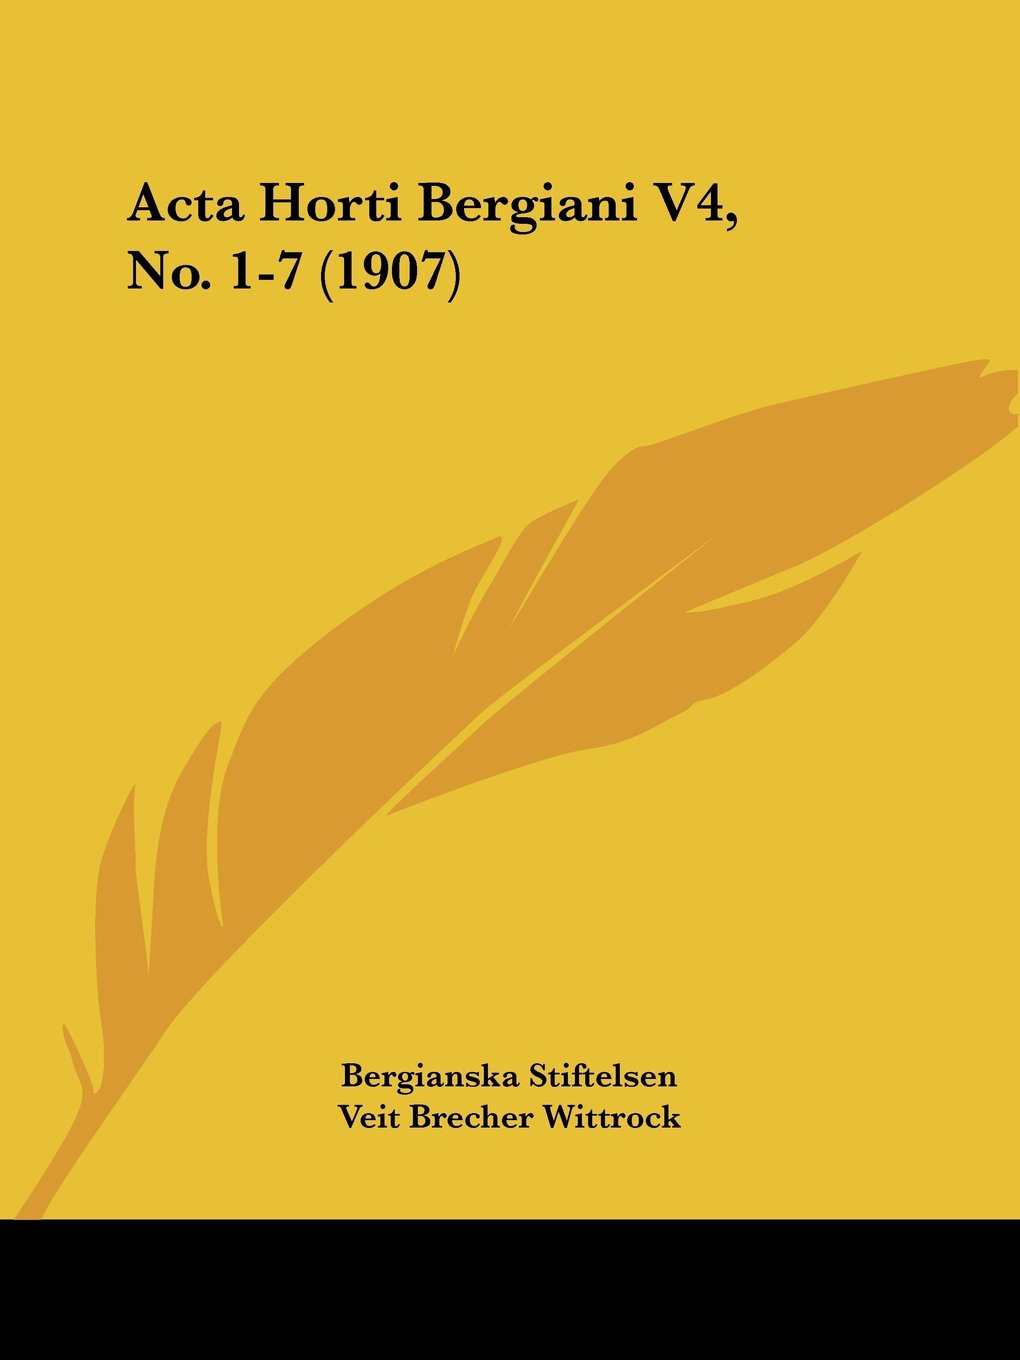 Acta Horti Bergiani V4, No. 1-7 (1907) (Latin Edition) ebook